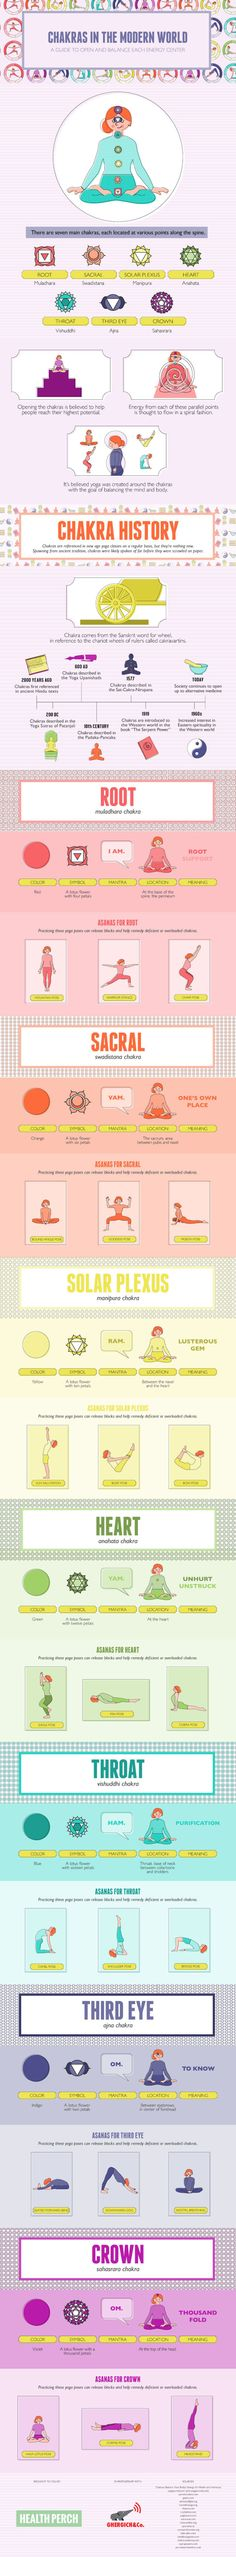 Balance Your 7 Chakras With These Yoga Poses & Mantras (Infographic)